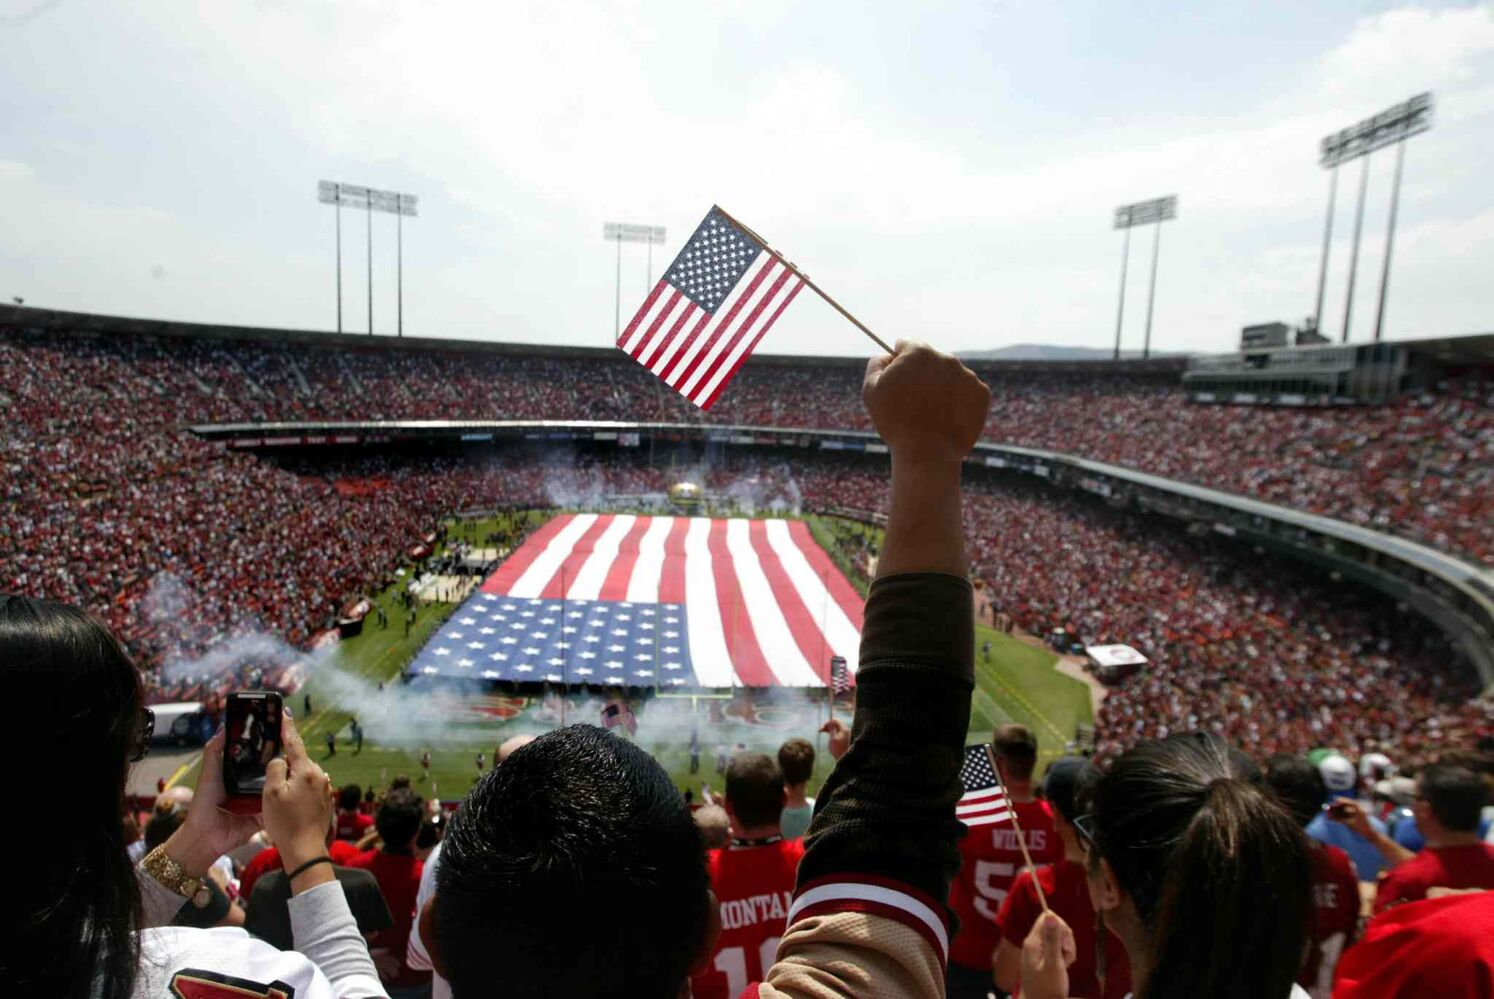 An American flag unfurls on the field during to commemorate the 10th anniversary of the 9/11 terrorist attacks prior to the NFL season home-opener between the San Francisco 49ers and the Seattle Seahawks on Sunday, September 11, 2011. (Ray Chavez / Oakland Tribune / MCT files)